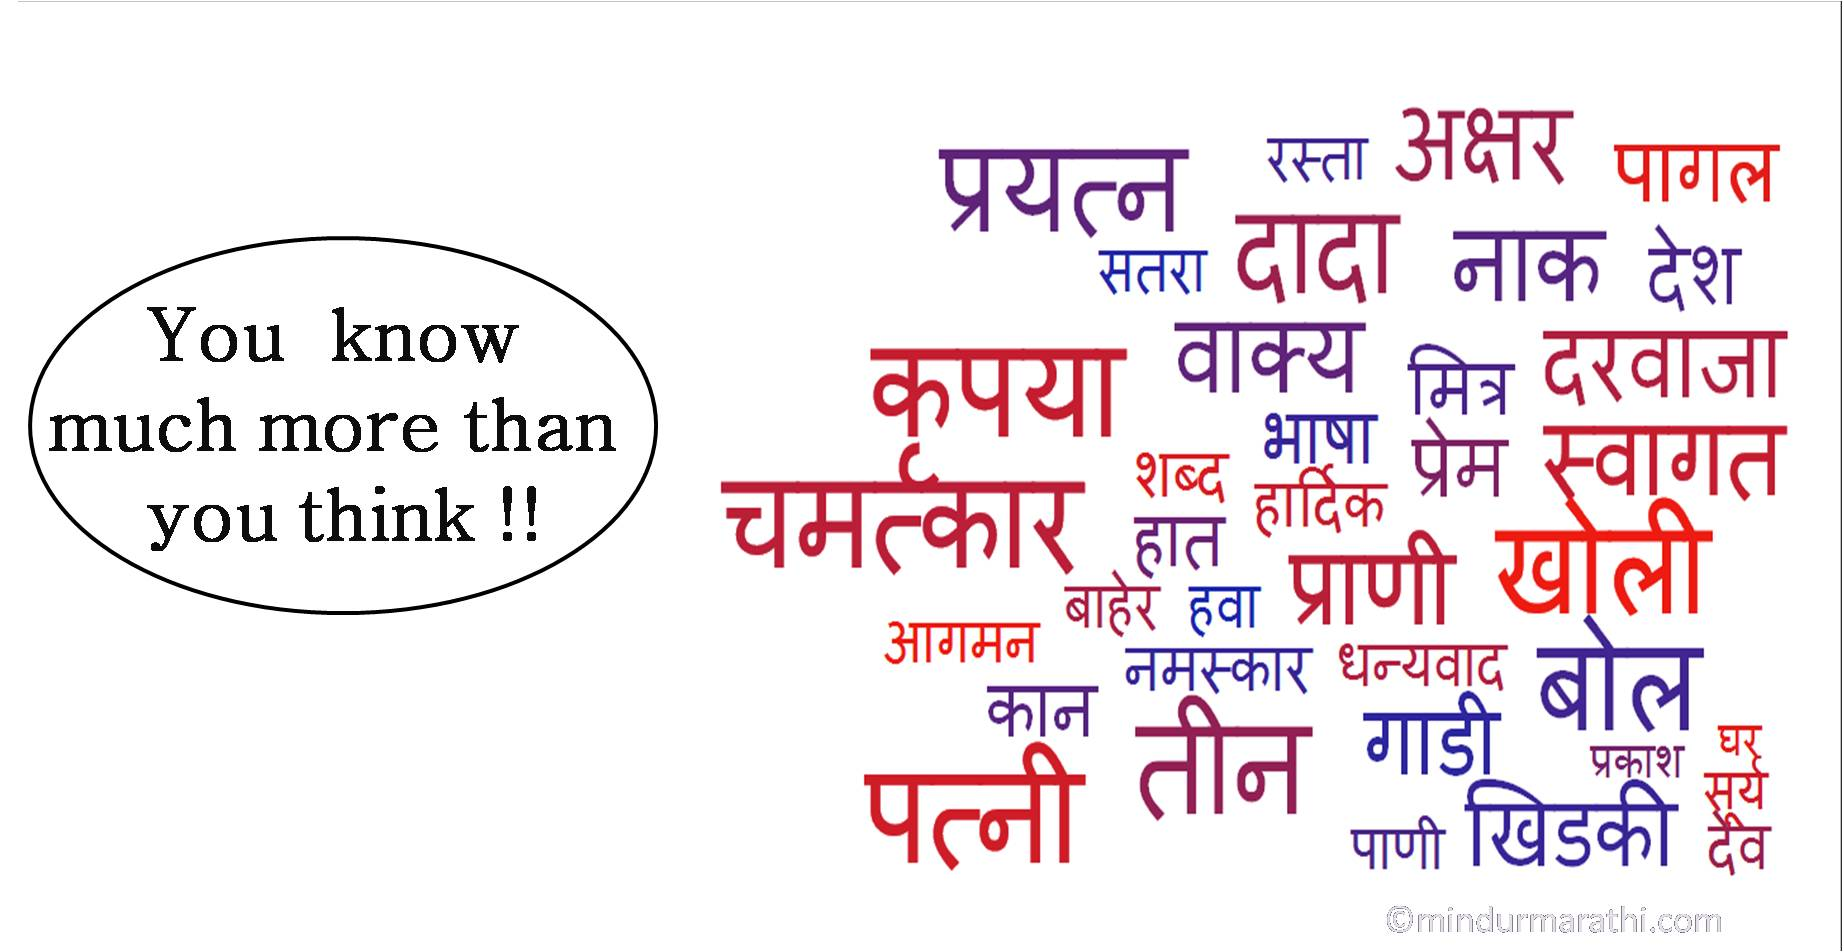 Preposition In Learn In Marathi All Complate: Learn And Speak Marathi Online For Free In 30 Days -Learn